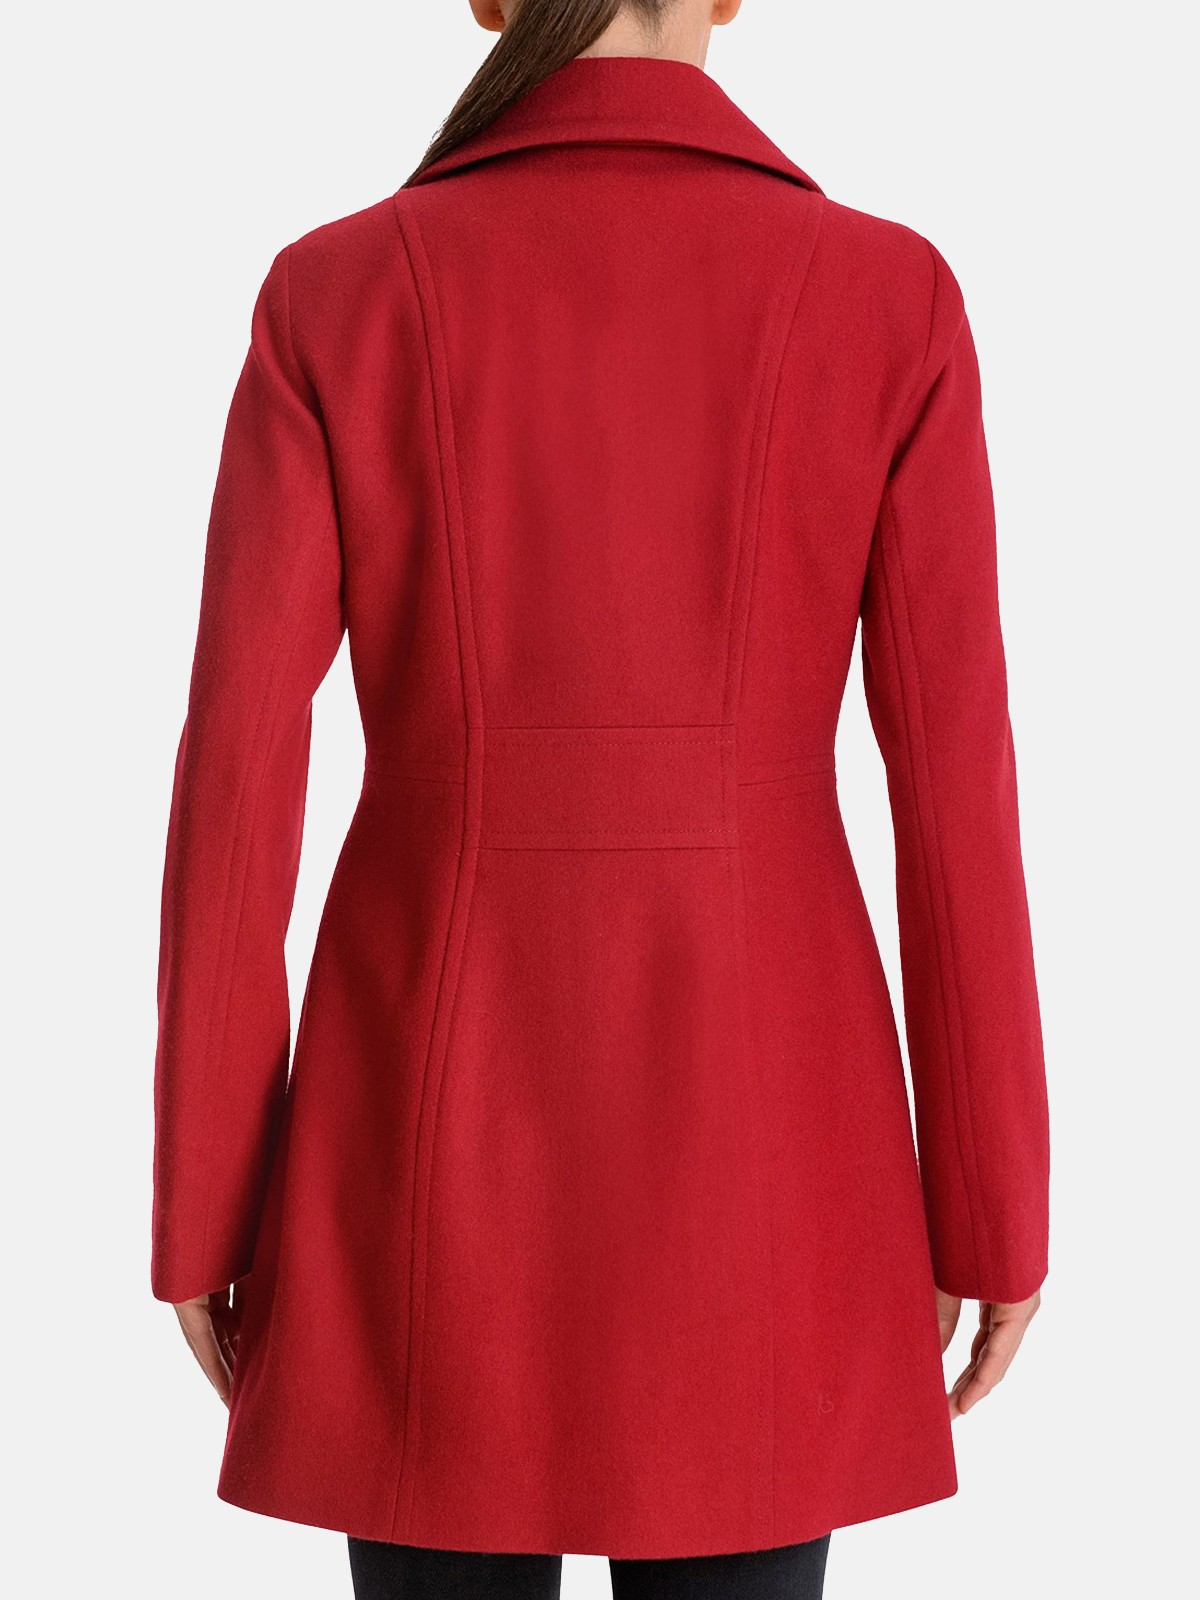 Bright-Red-Button-Closure-Woolen-Coat-for-Women-Back-1-1-1-1.jpg